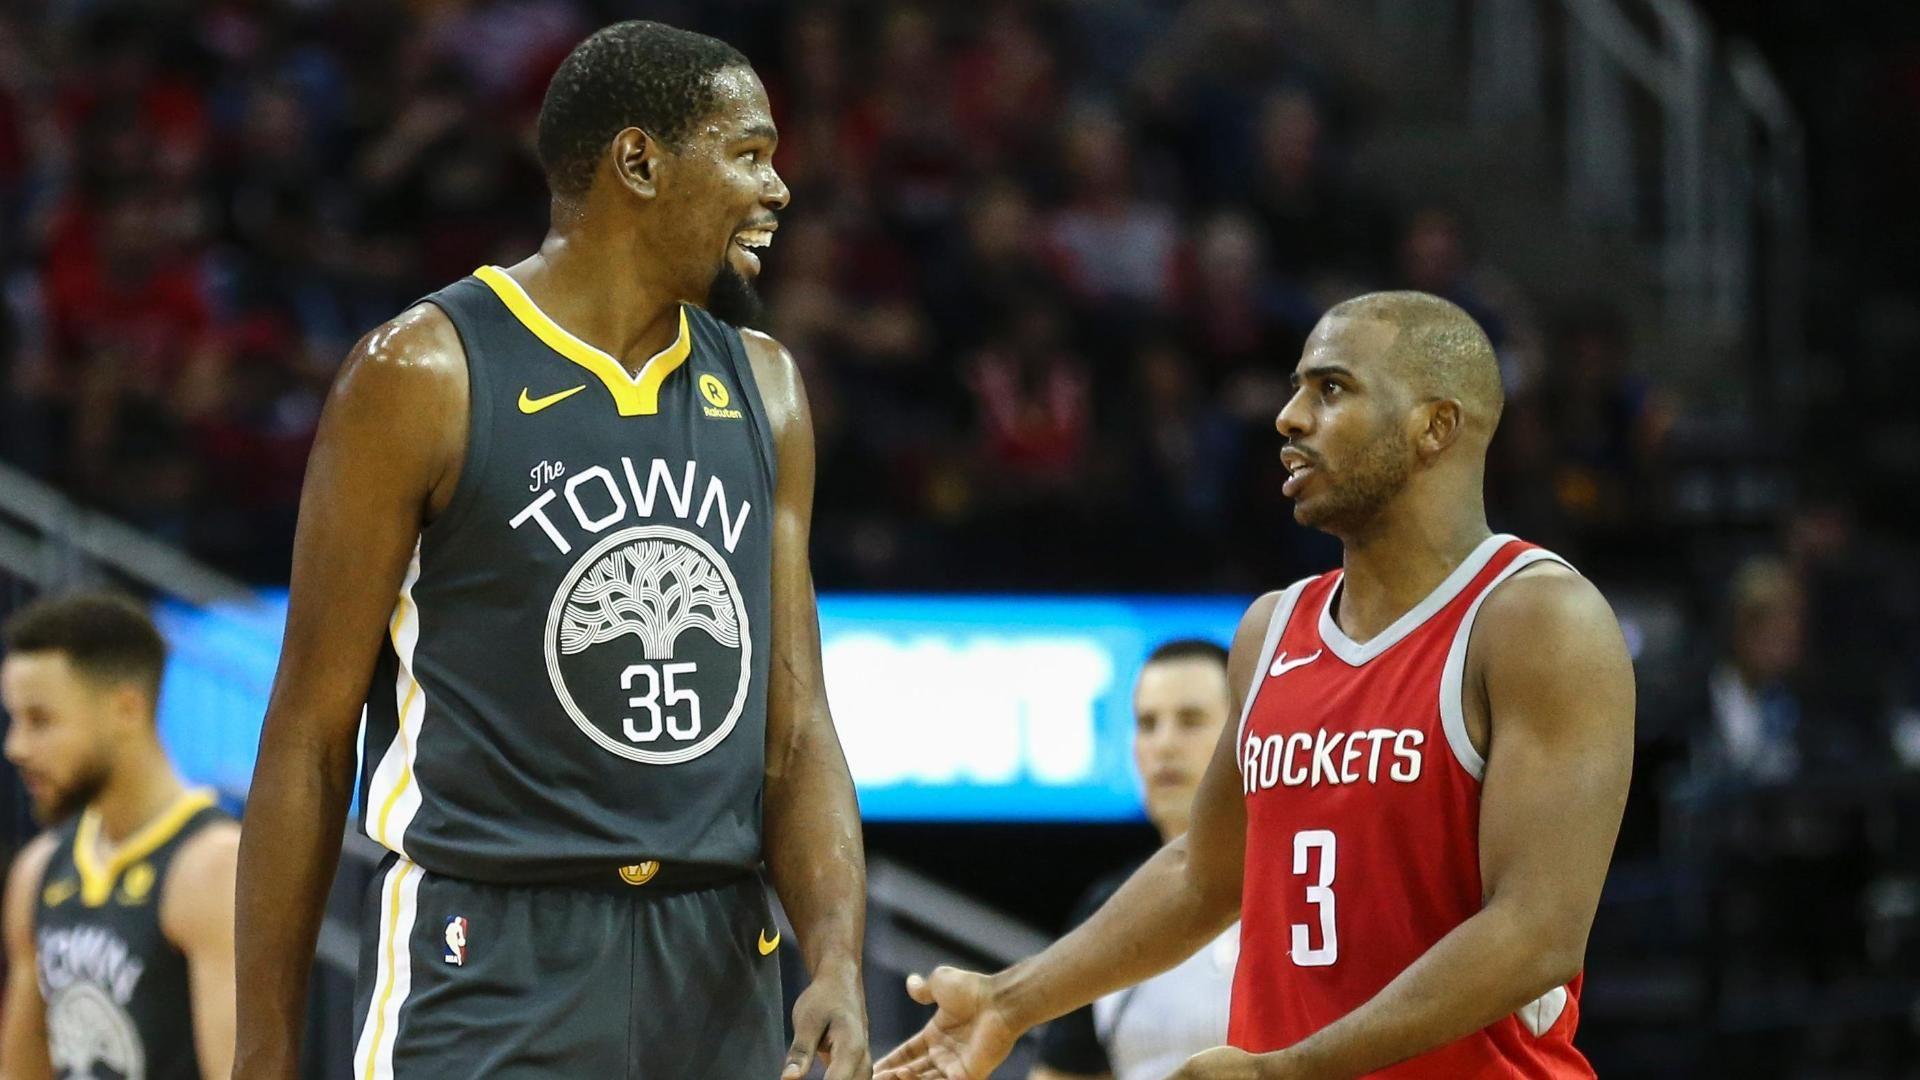 A dramatic journey leads to Warriors-Rockets showdown